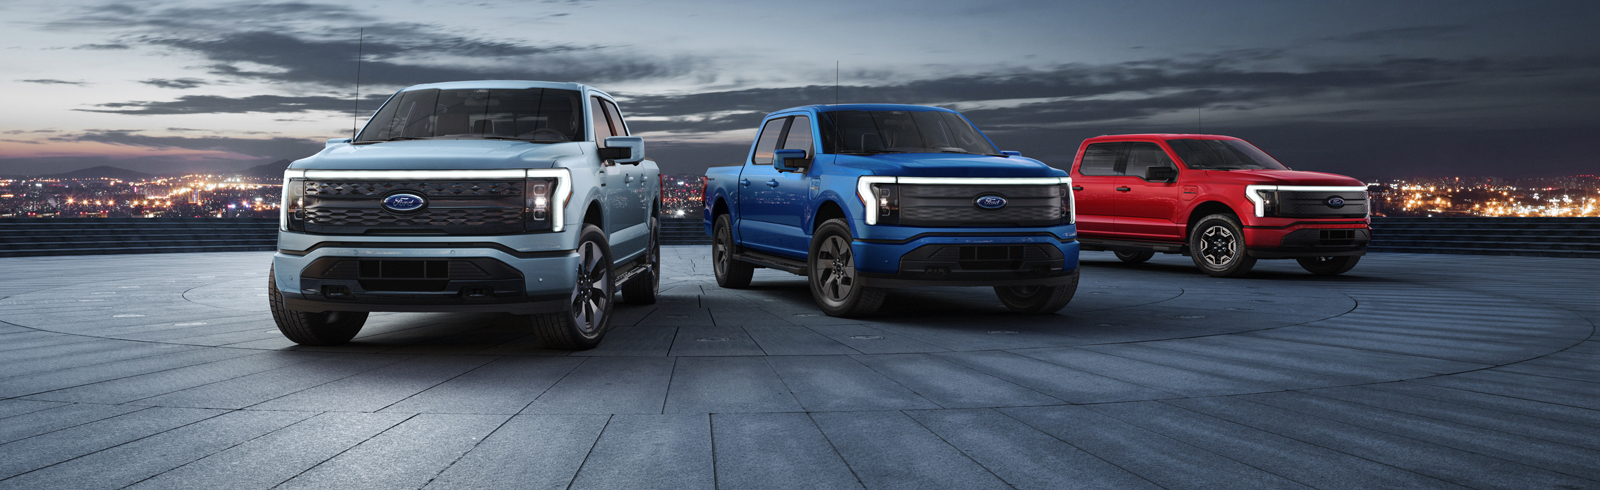 All-electric Ford F-150 Lightning - specifications and features, prices